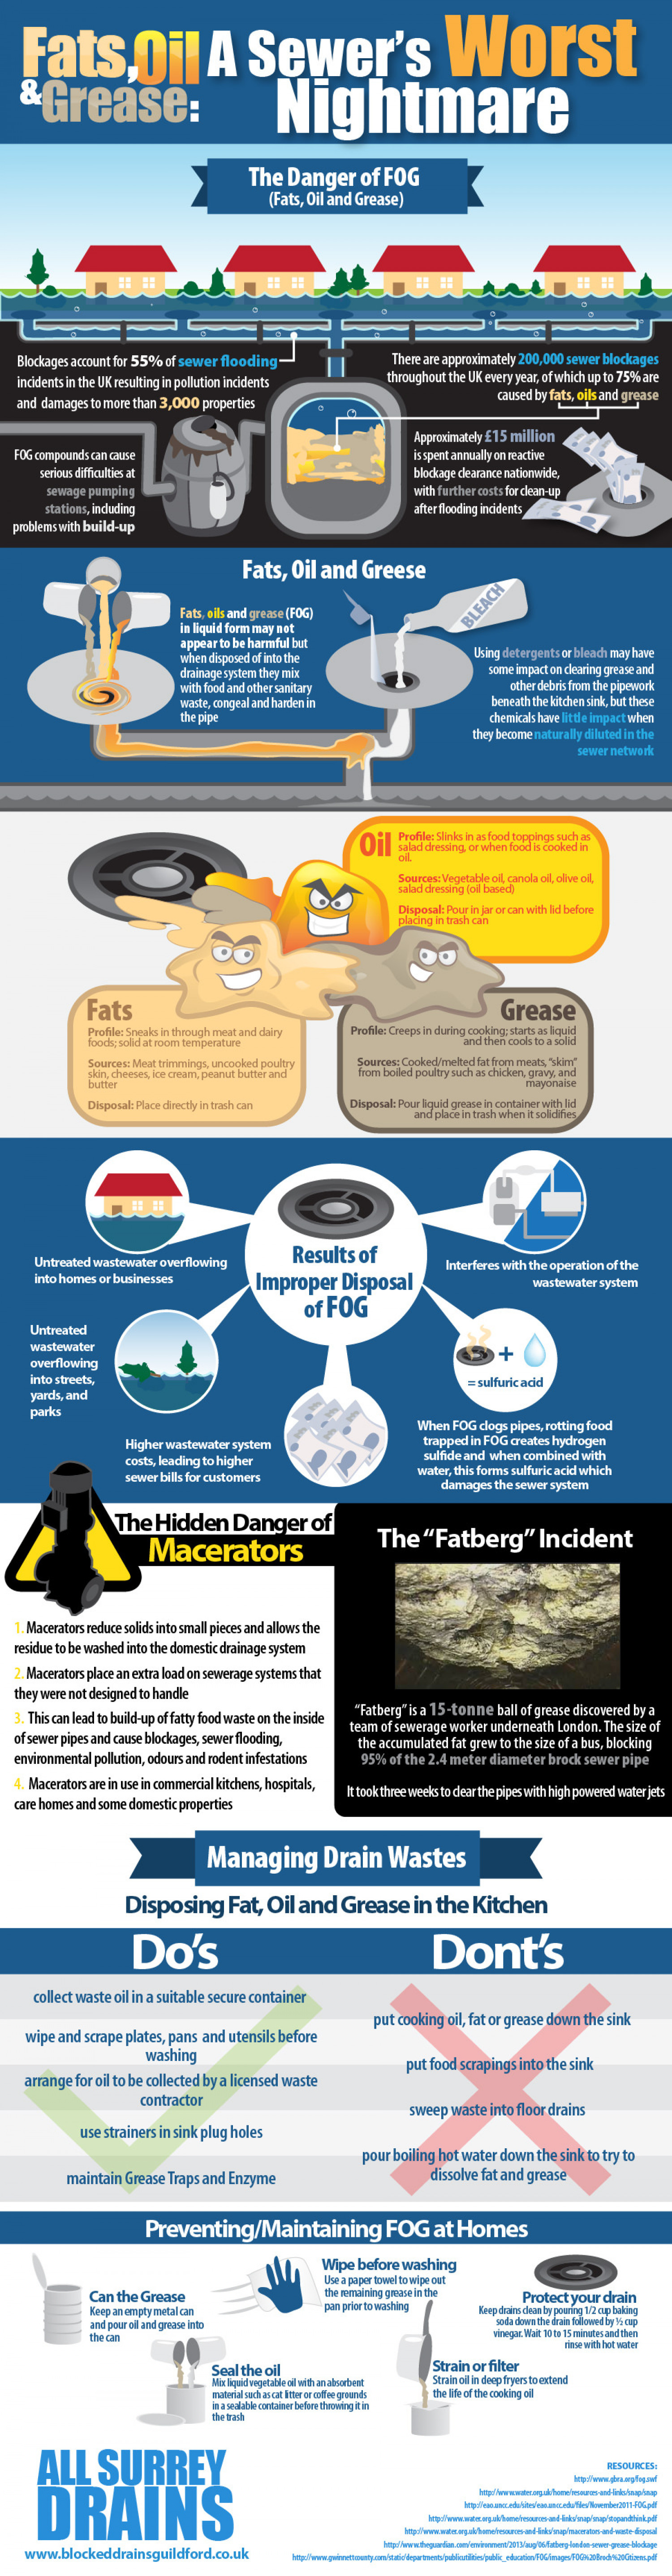 Fats, Oil and Grease: A Sewer's Worst Nightmare: Infographic